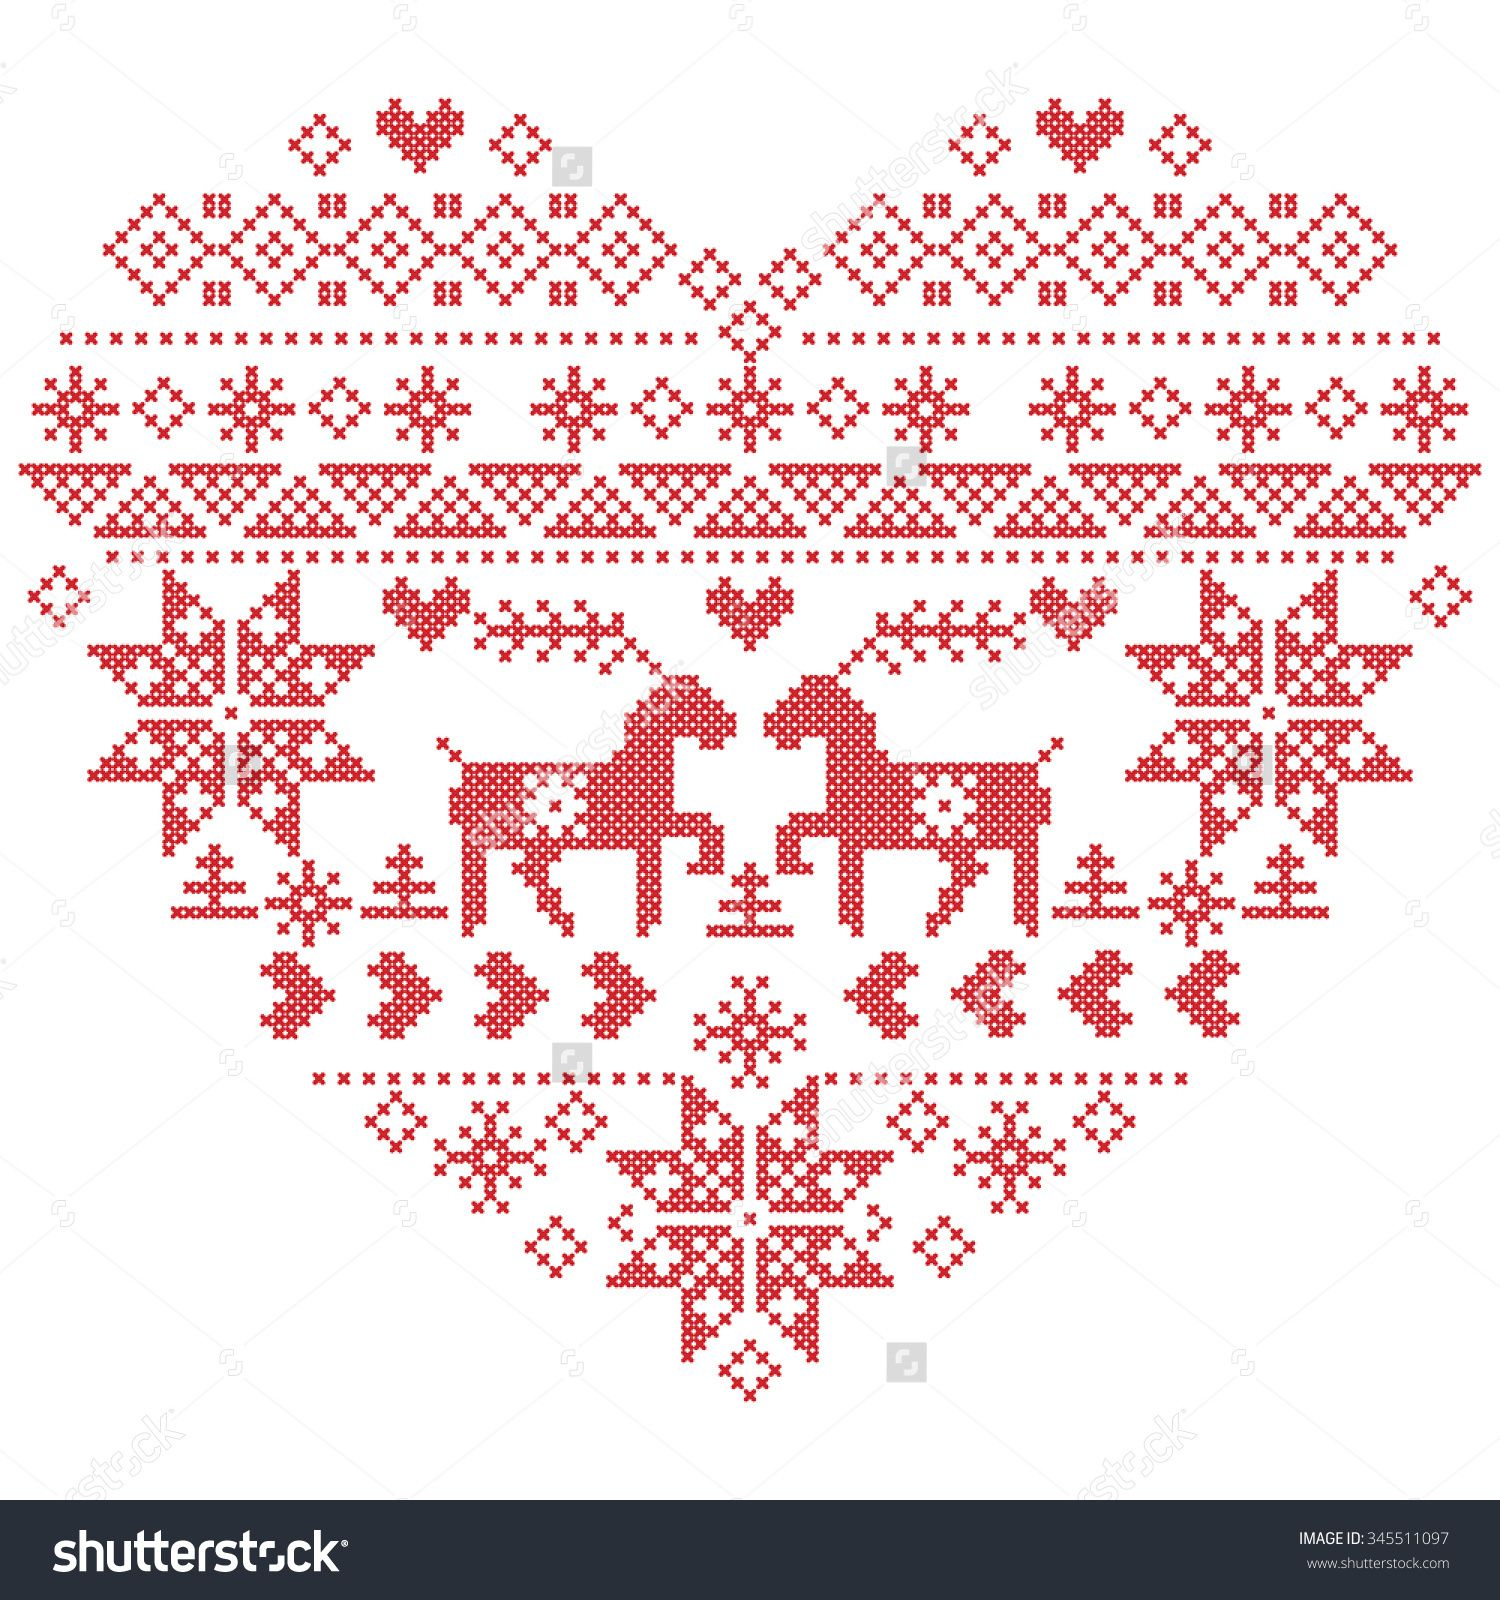 Scandinavian nordic winter stitch knitting christmas pattern in scandinavian nordic winter stitch knitting christmas pattern in in heart shape shape including snowflakes bankloansurffo Images